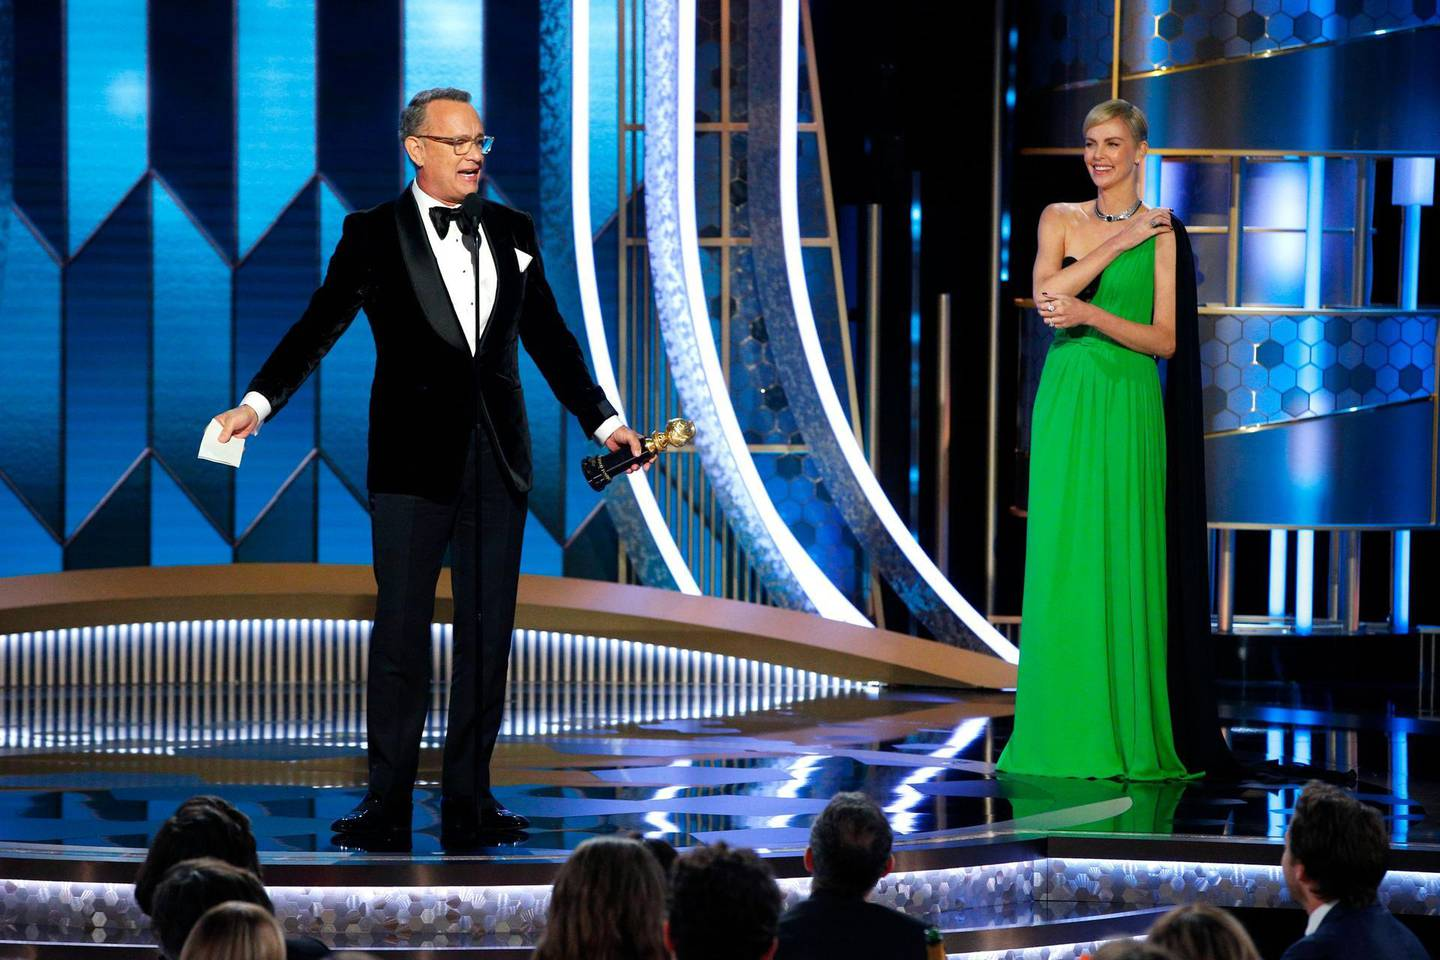 77th Golden Globe Awards - Show - Beverly Hills, California, U.S., January 5, 2020 - Tom Hanks accepts the Cecil B. DeMille Award as Charlize Theron looks on.   Paul Drinkwater/NBC Universal/Handout via REUTERS For editorial use only. Additional clearance required for commercial or promotional use, contact your local office for assistance. Any commercial or promotional use of NBCUniversal content requires NBCUniversal's prior written consent. No book publishing without prior approval. NO SALES. NO ARCHIVES.